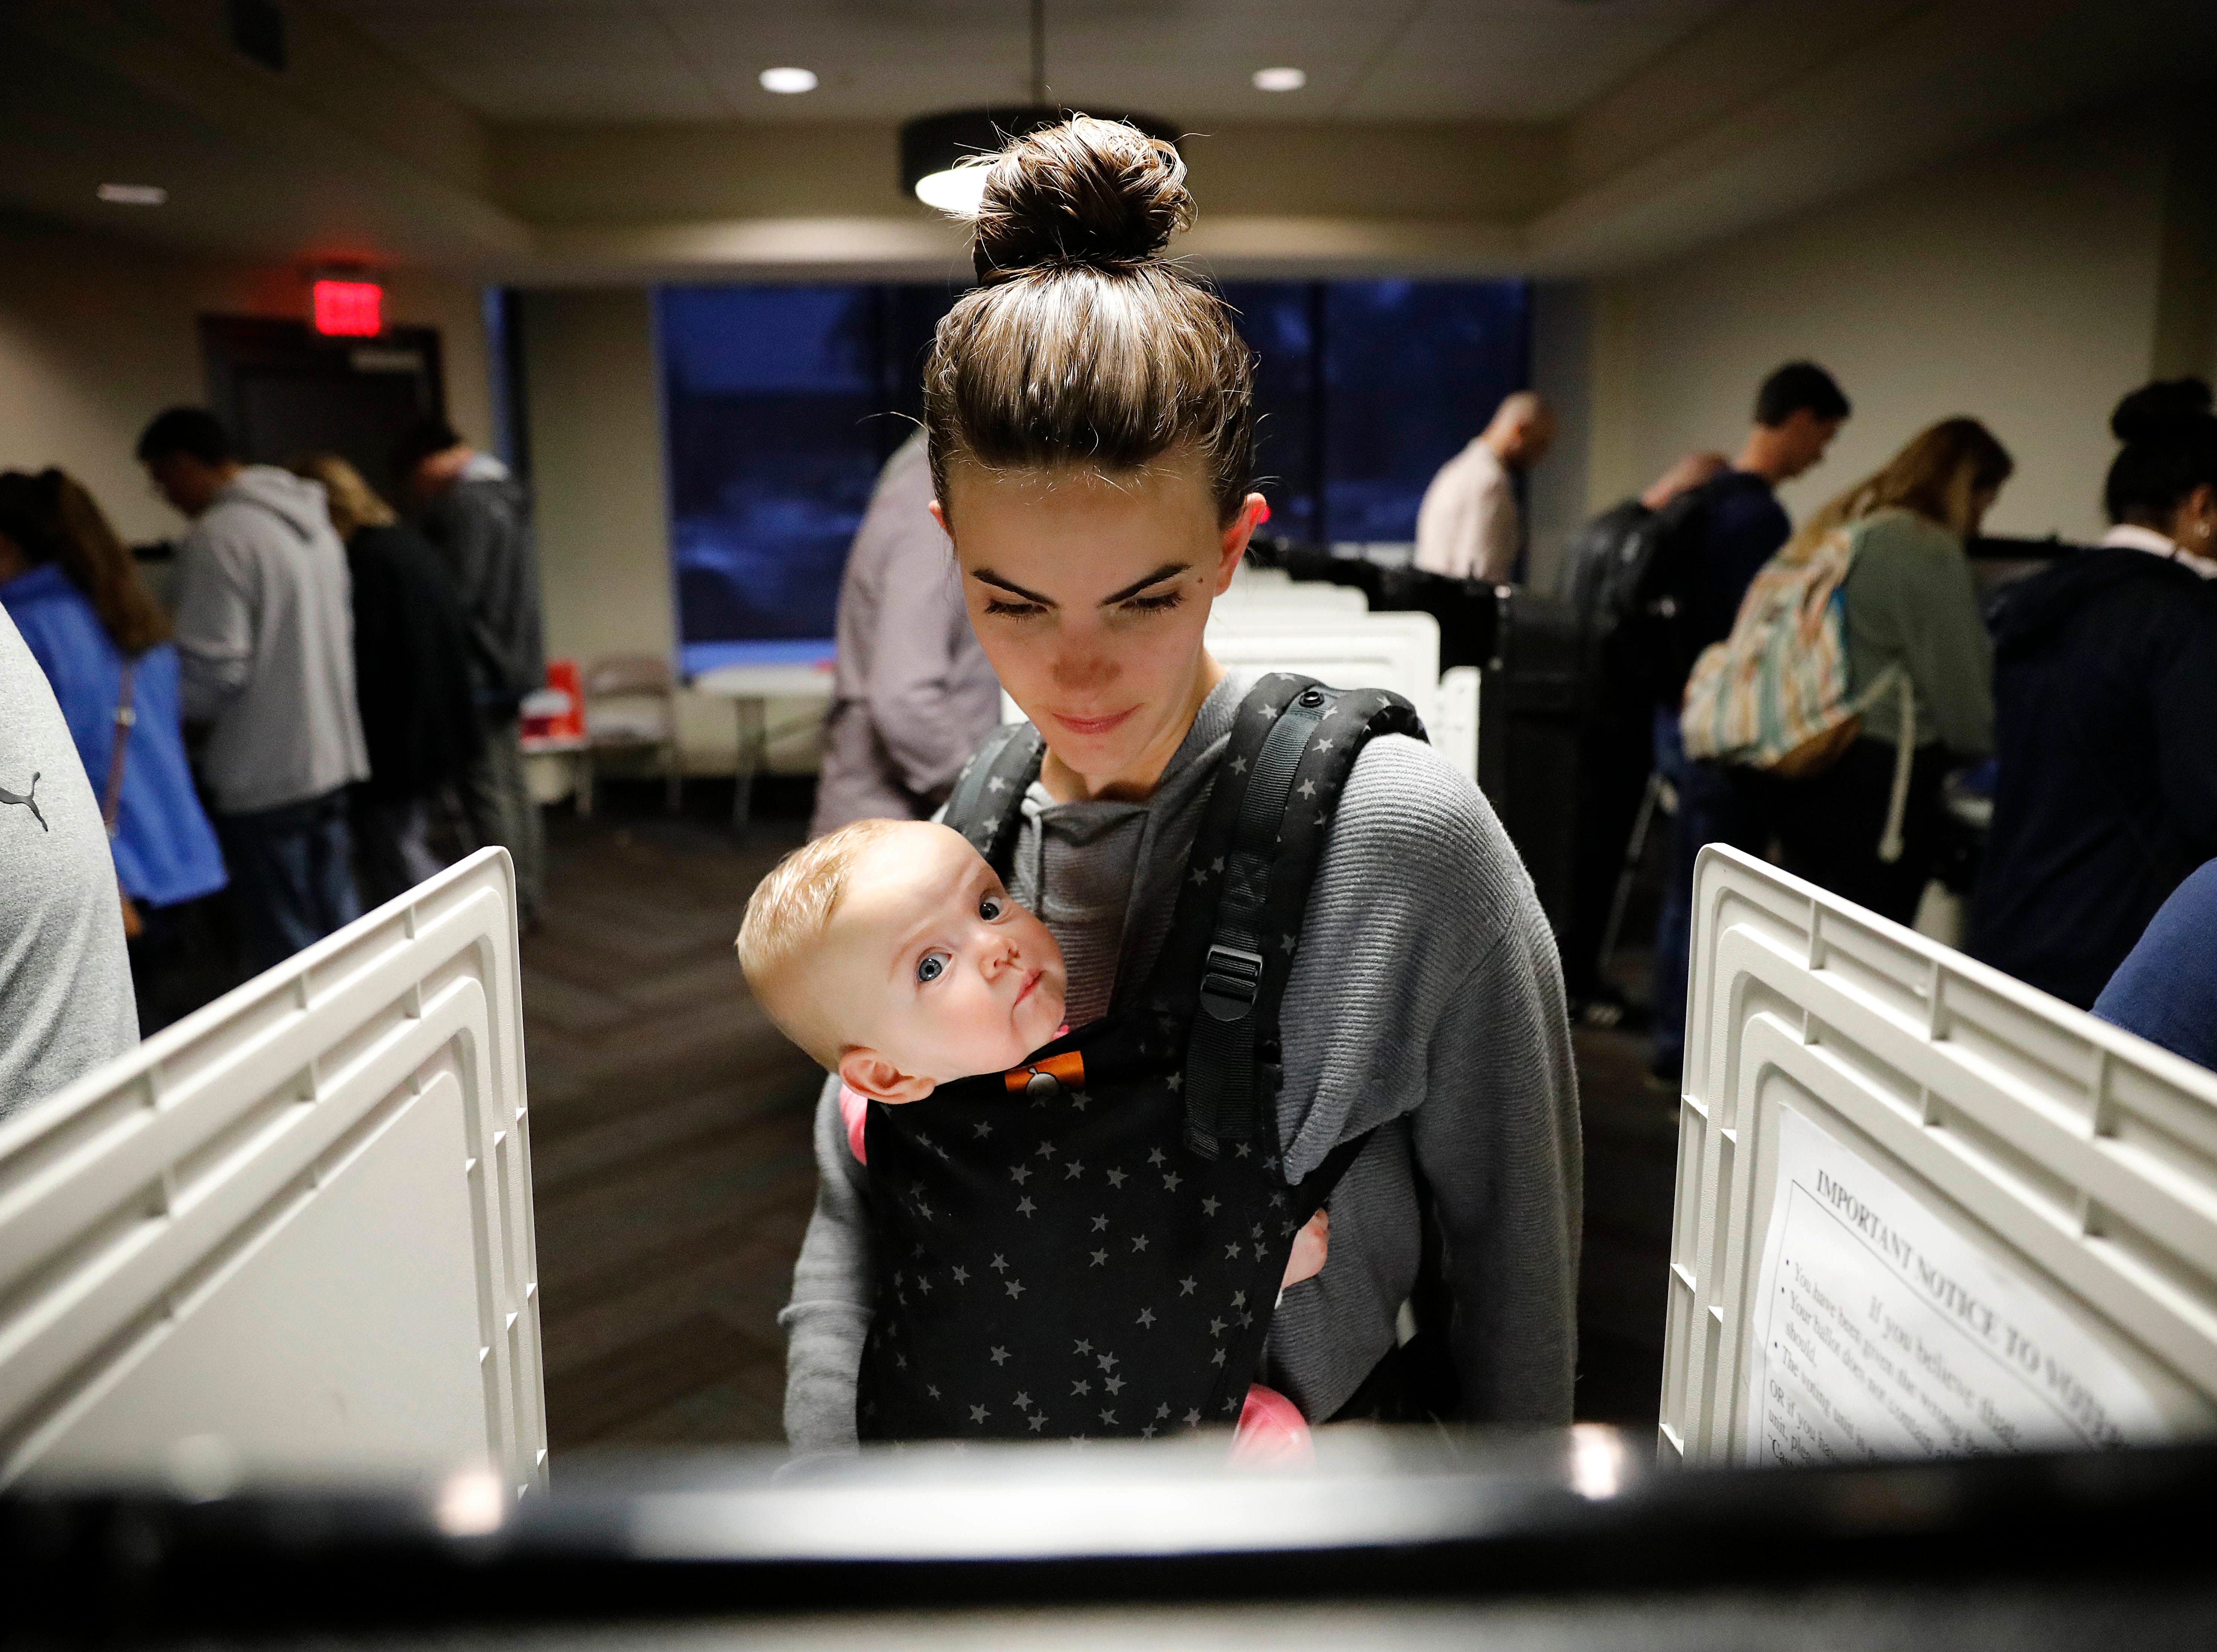 Kristen Leach votes with her 6-month-old daughter, Nora, on election day in Atlanta, Tuesday, Nov. 6, 2018.